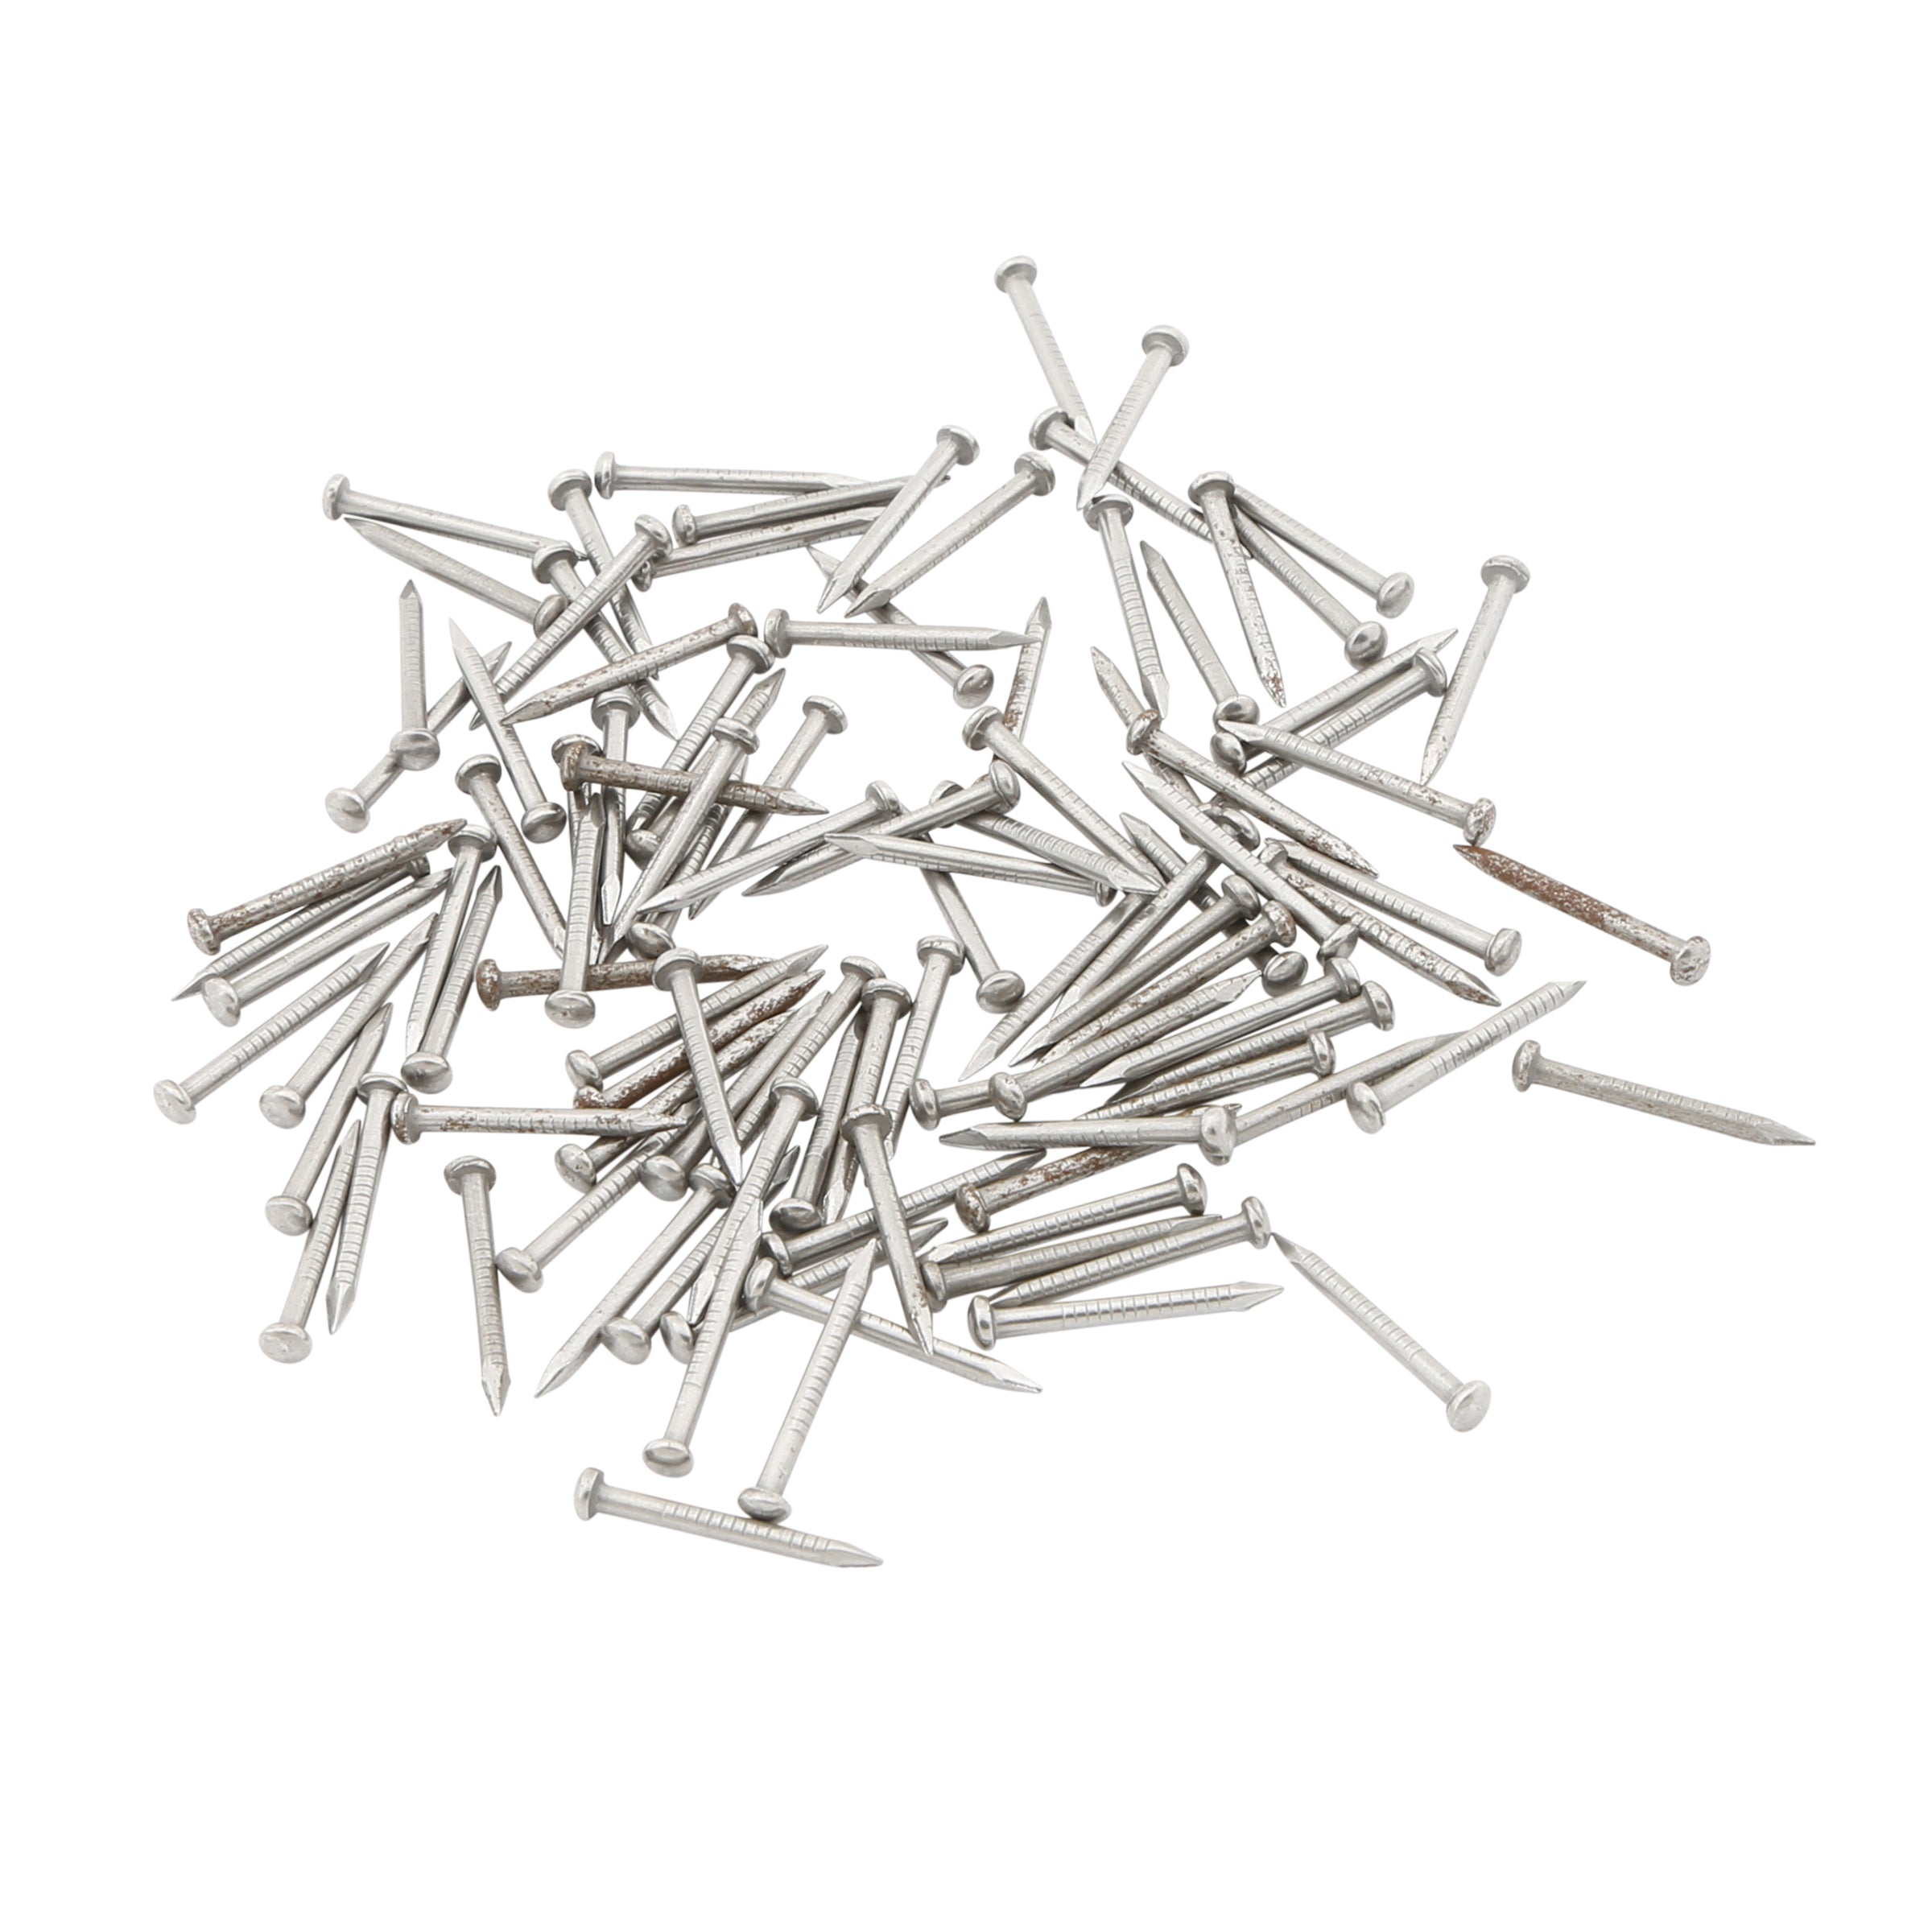 Body Nails / Top Molding & Rain Gutter Nails • .074 Diameter x 3/4